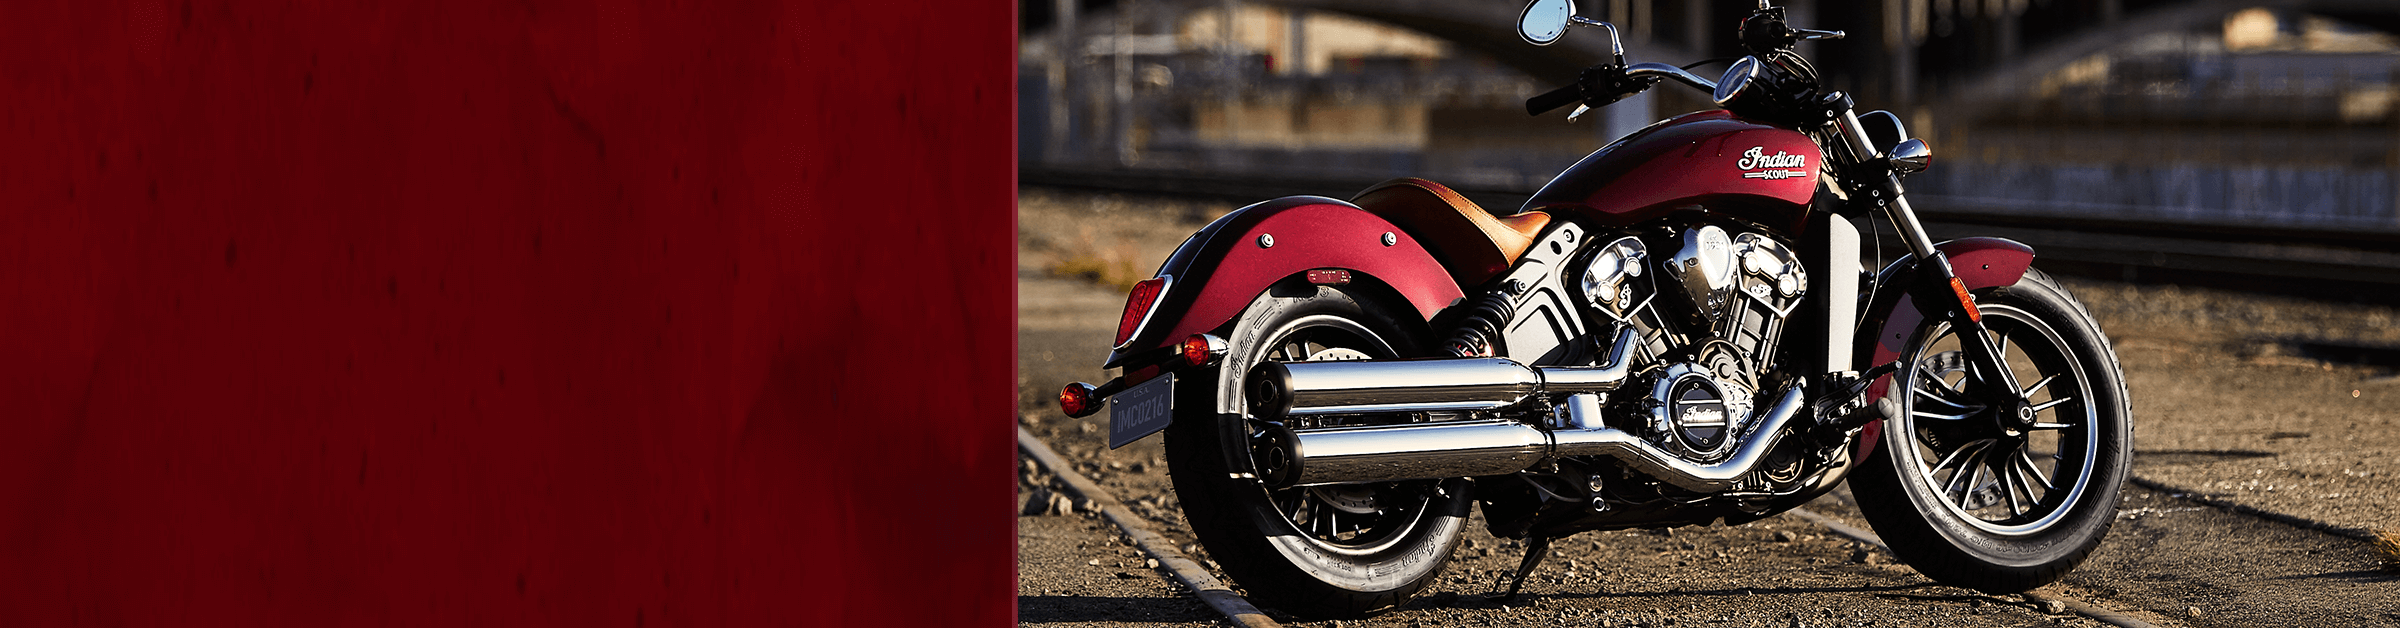 Indian Motorcycle Road Is Calling Promotion Slide